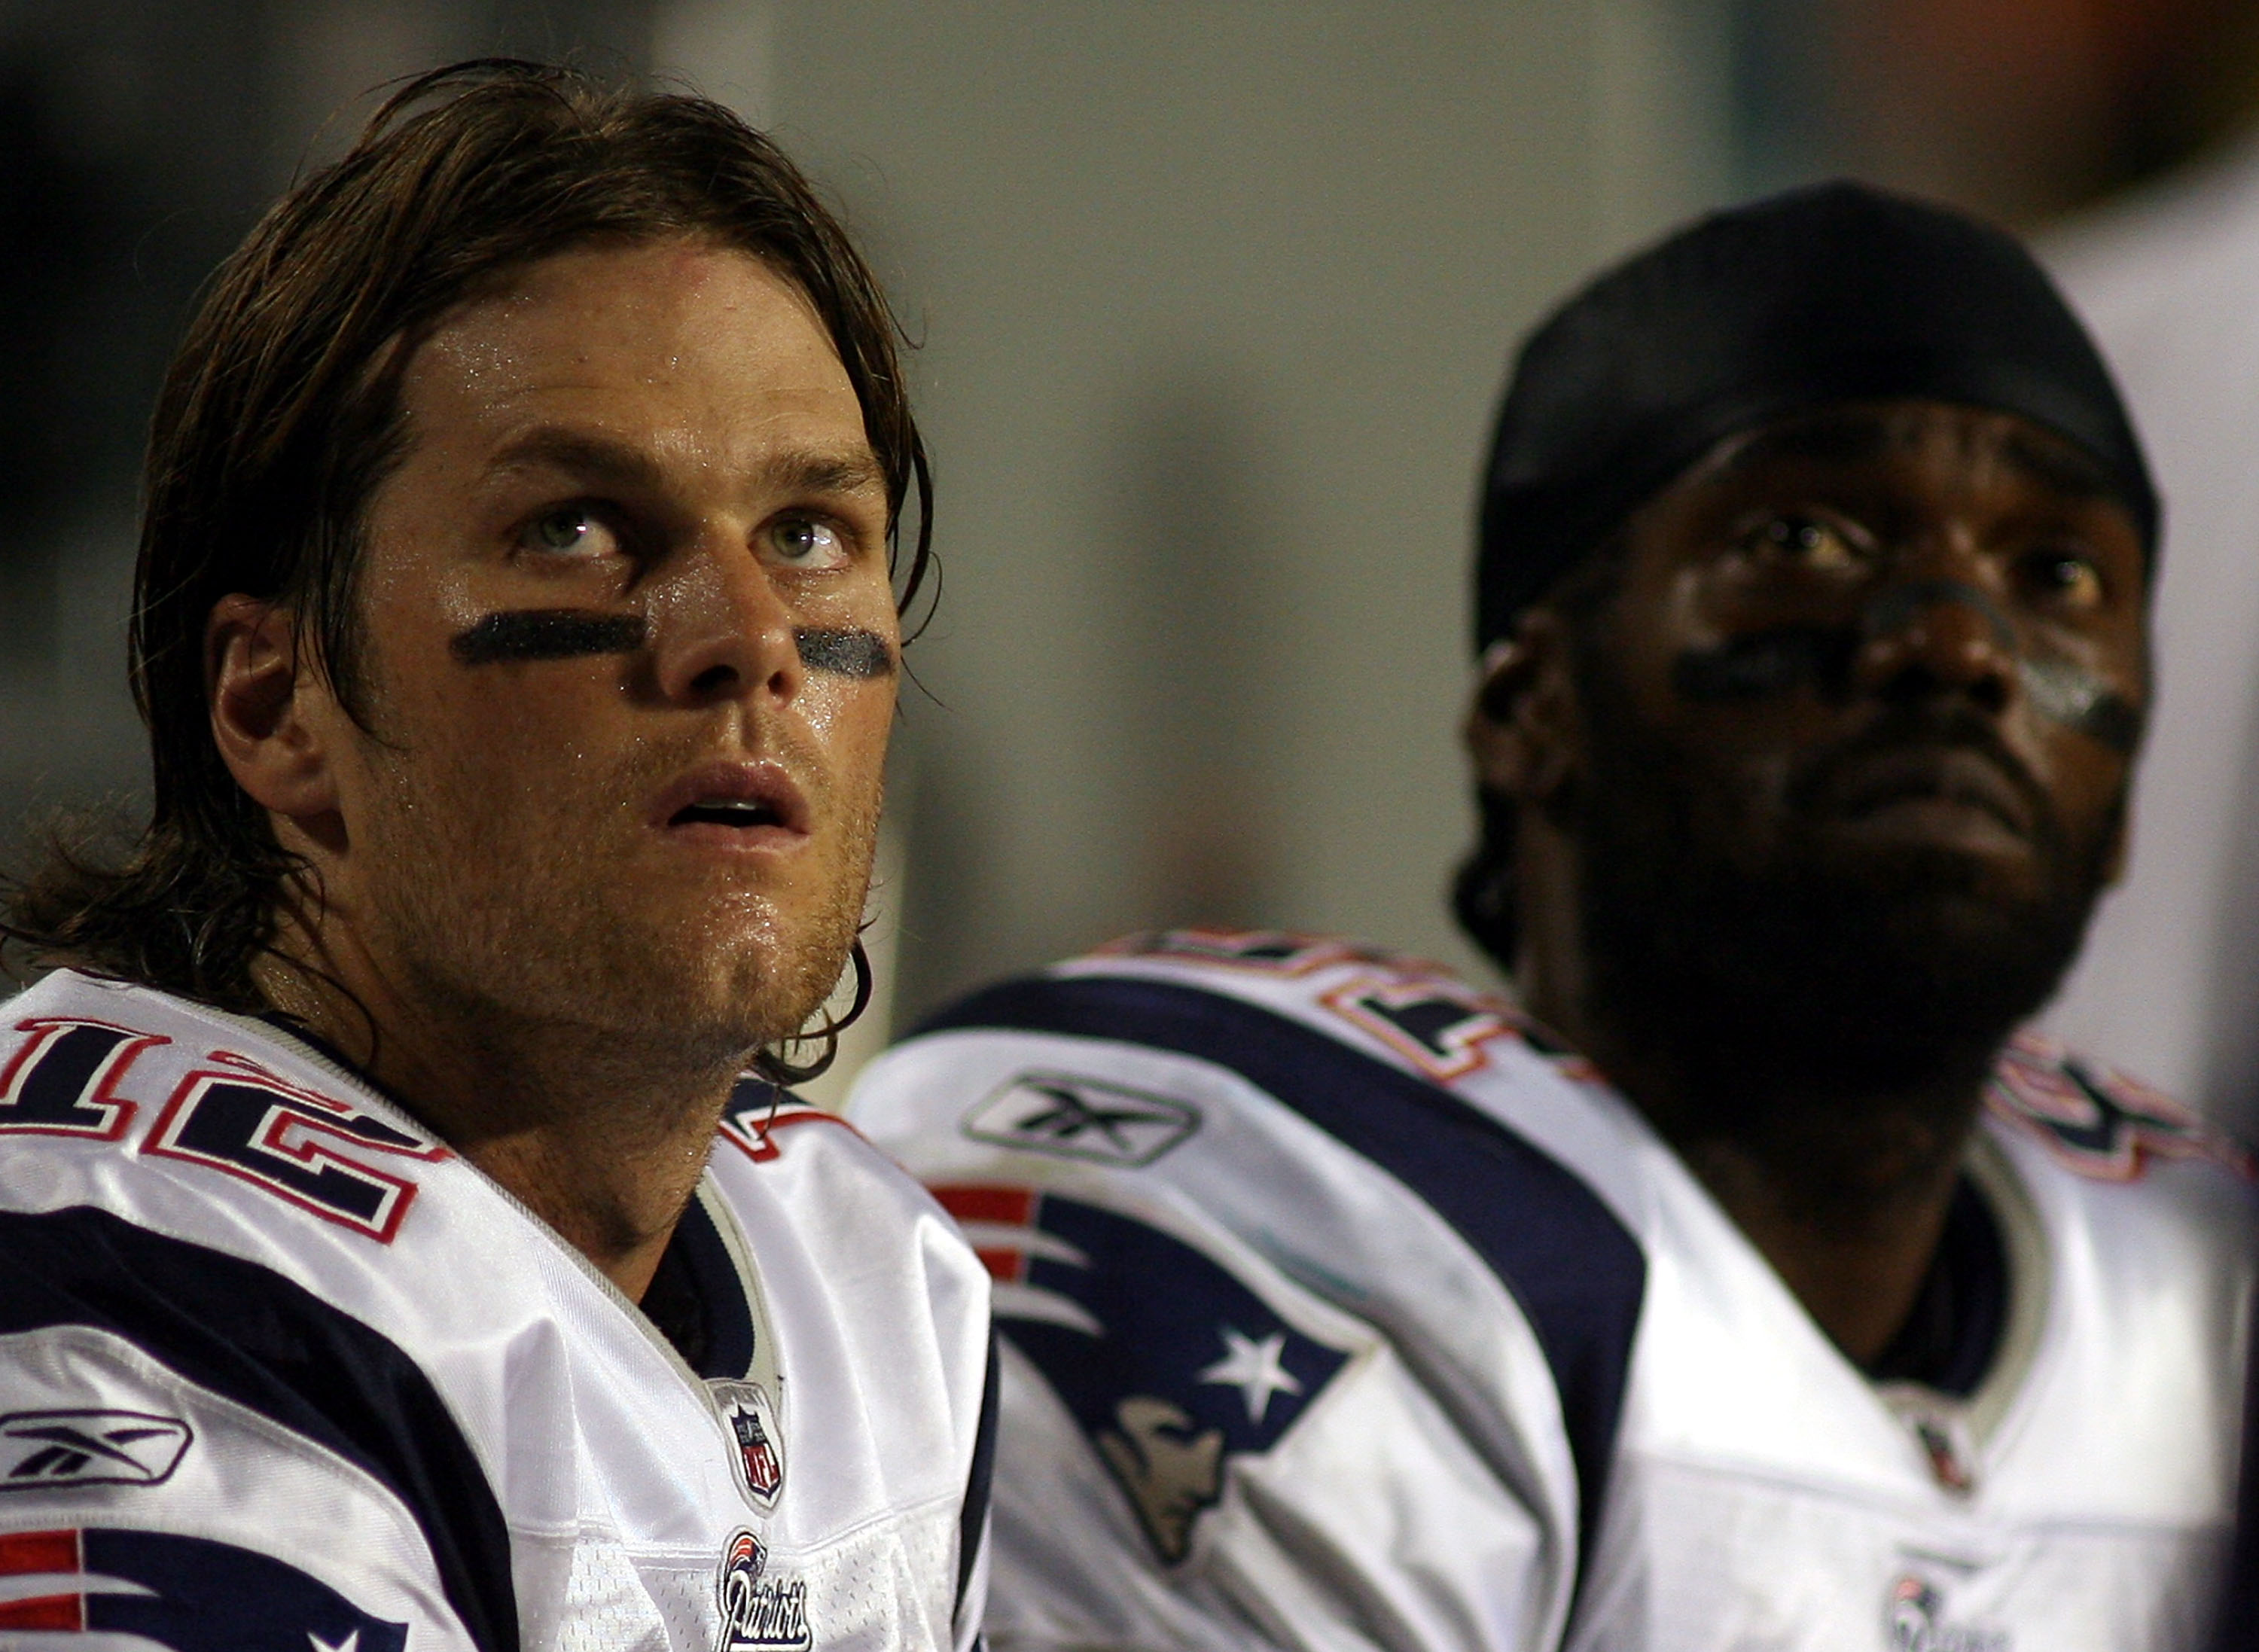 MIAMI - OCTOBER 04:  Quarterback Tom Brady #12 and Randy Moss of the New England Patriots sit on the sidelines  against the Miami Dolphins at Sun Life Stadium on October 4, 2010 in Miami, Florida.  (Photo by Marc Serota/Getty Images)